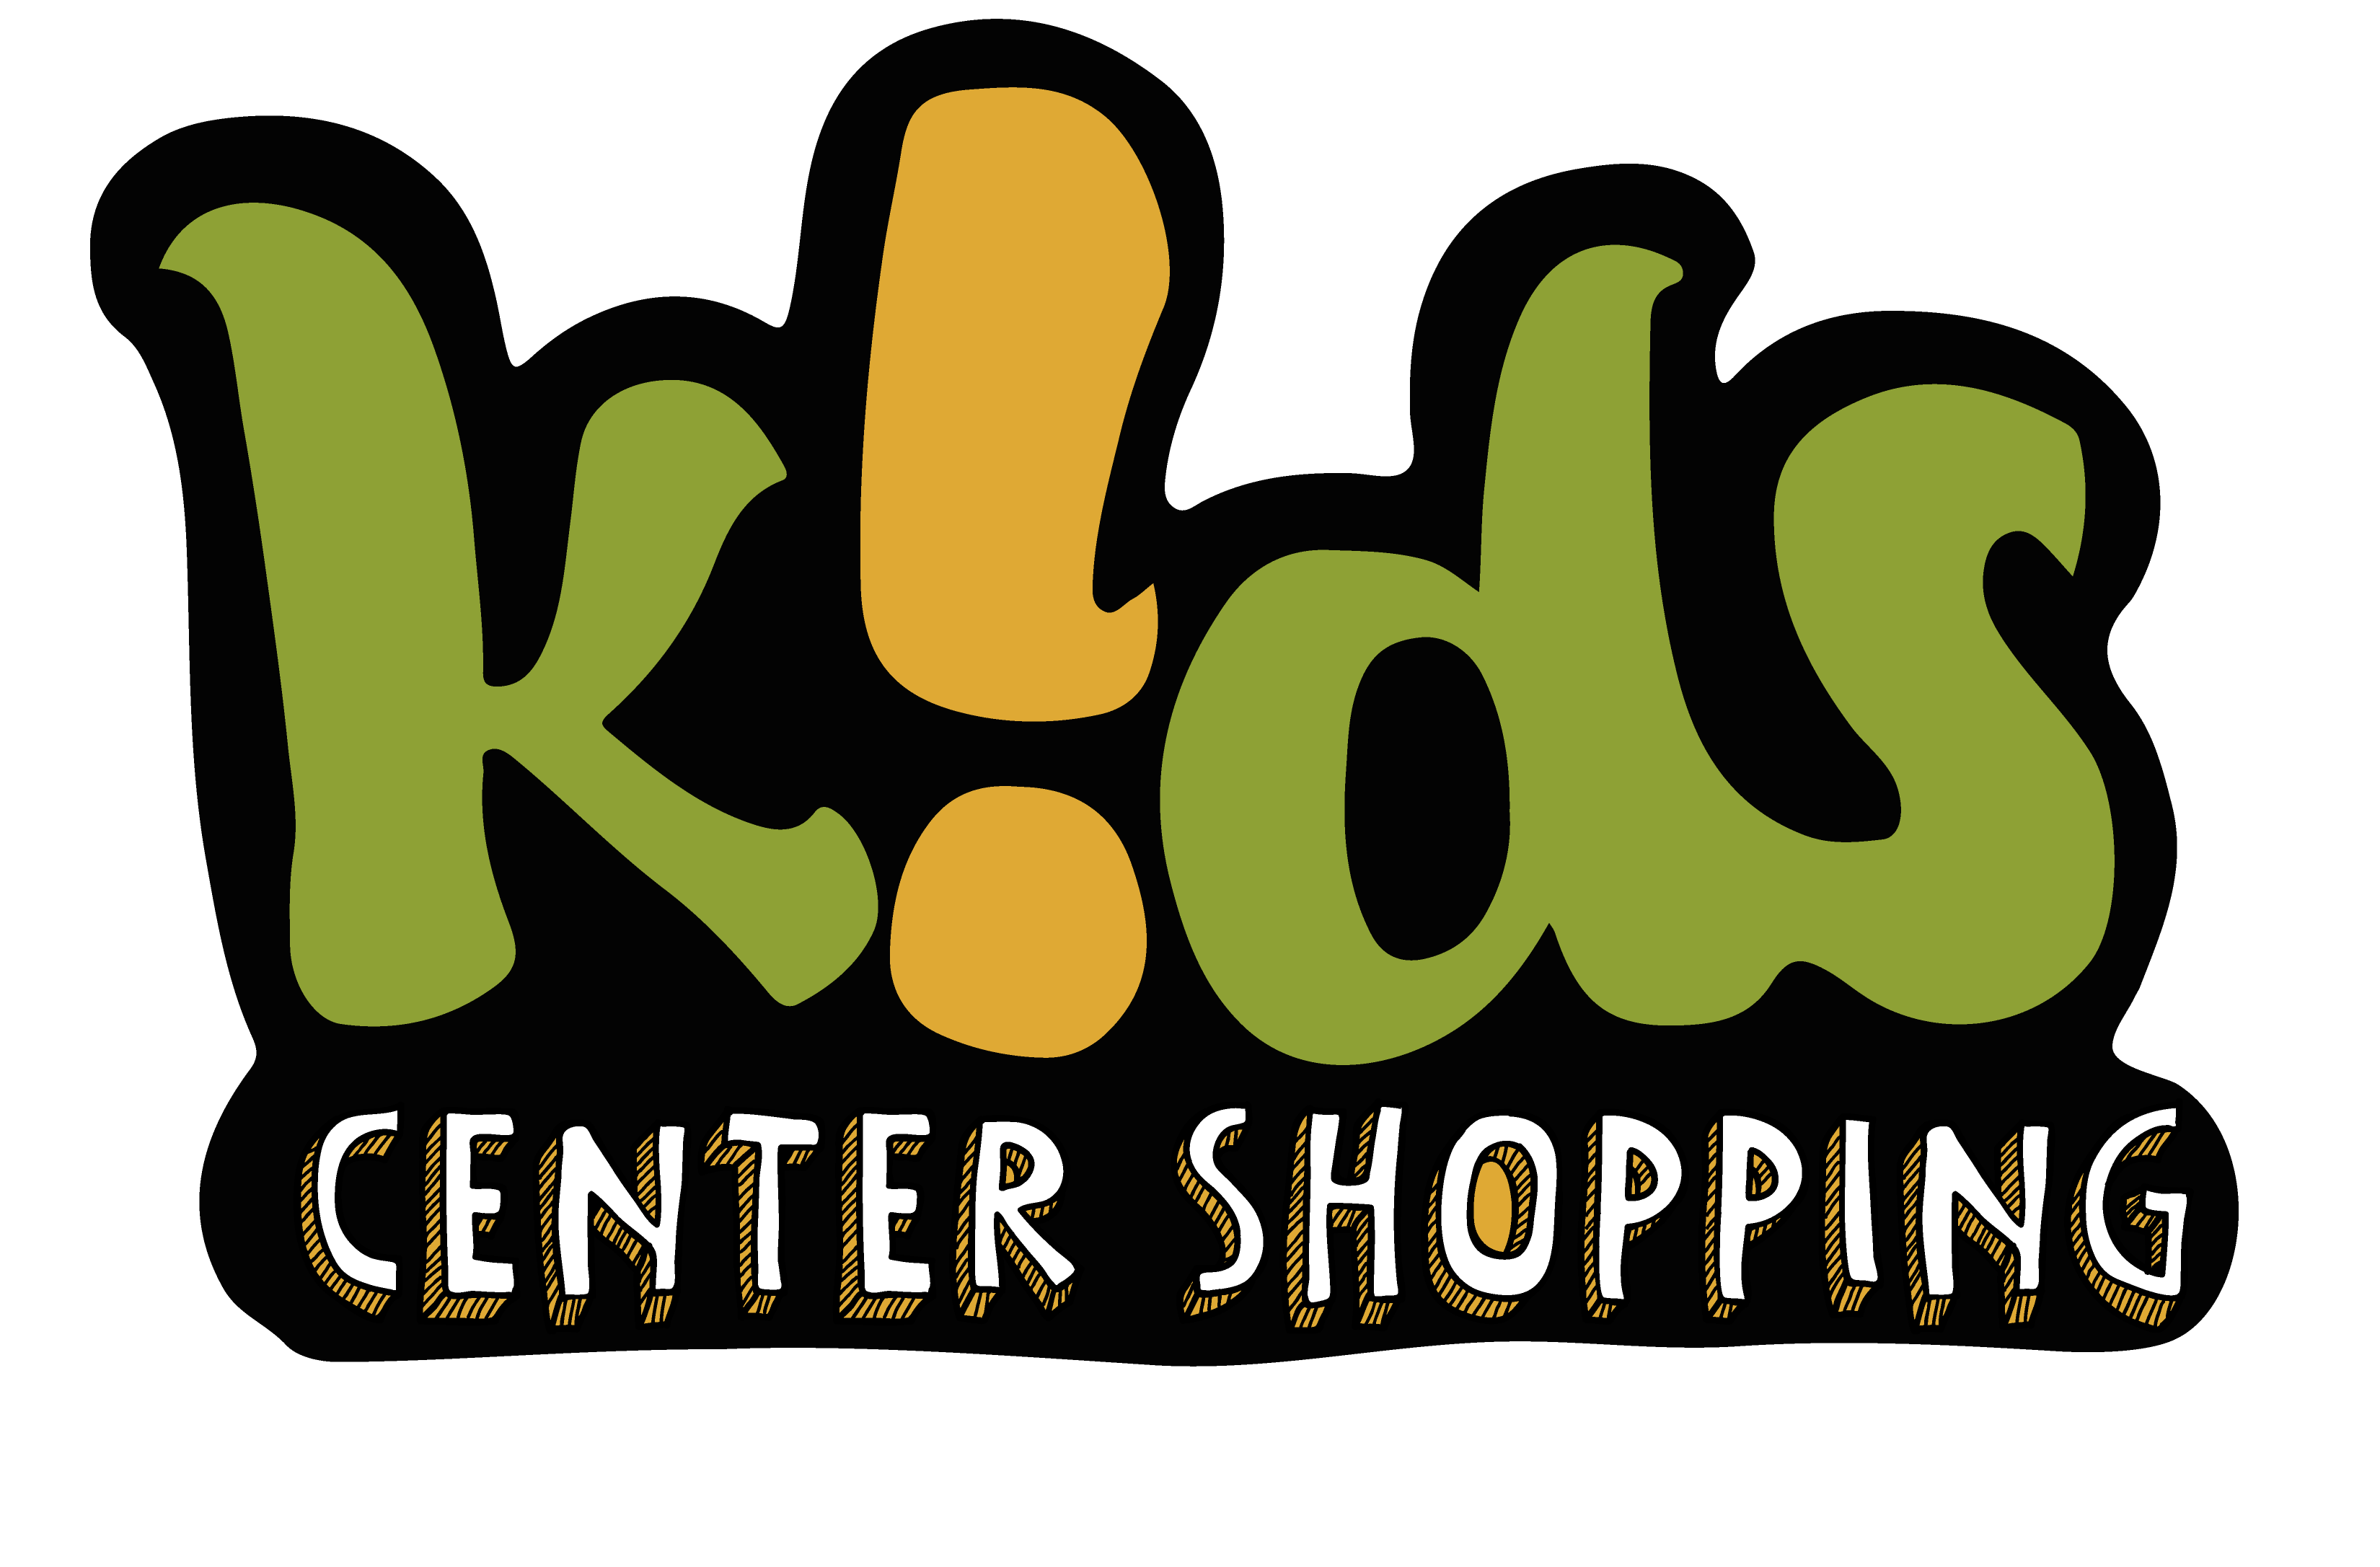 Kids Center Shopping